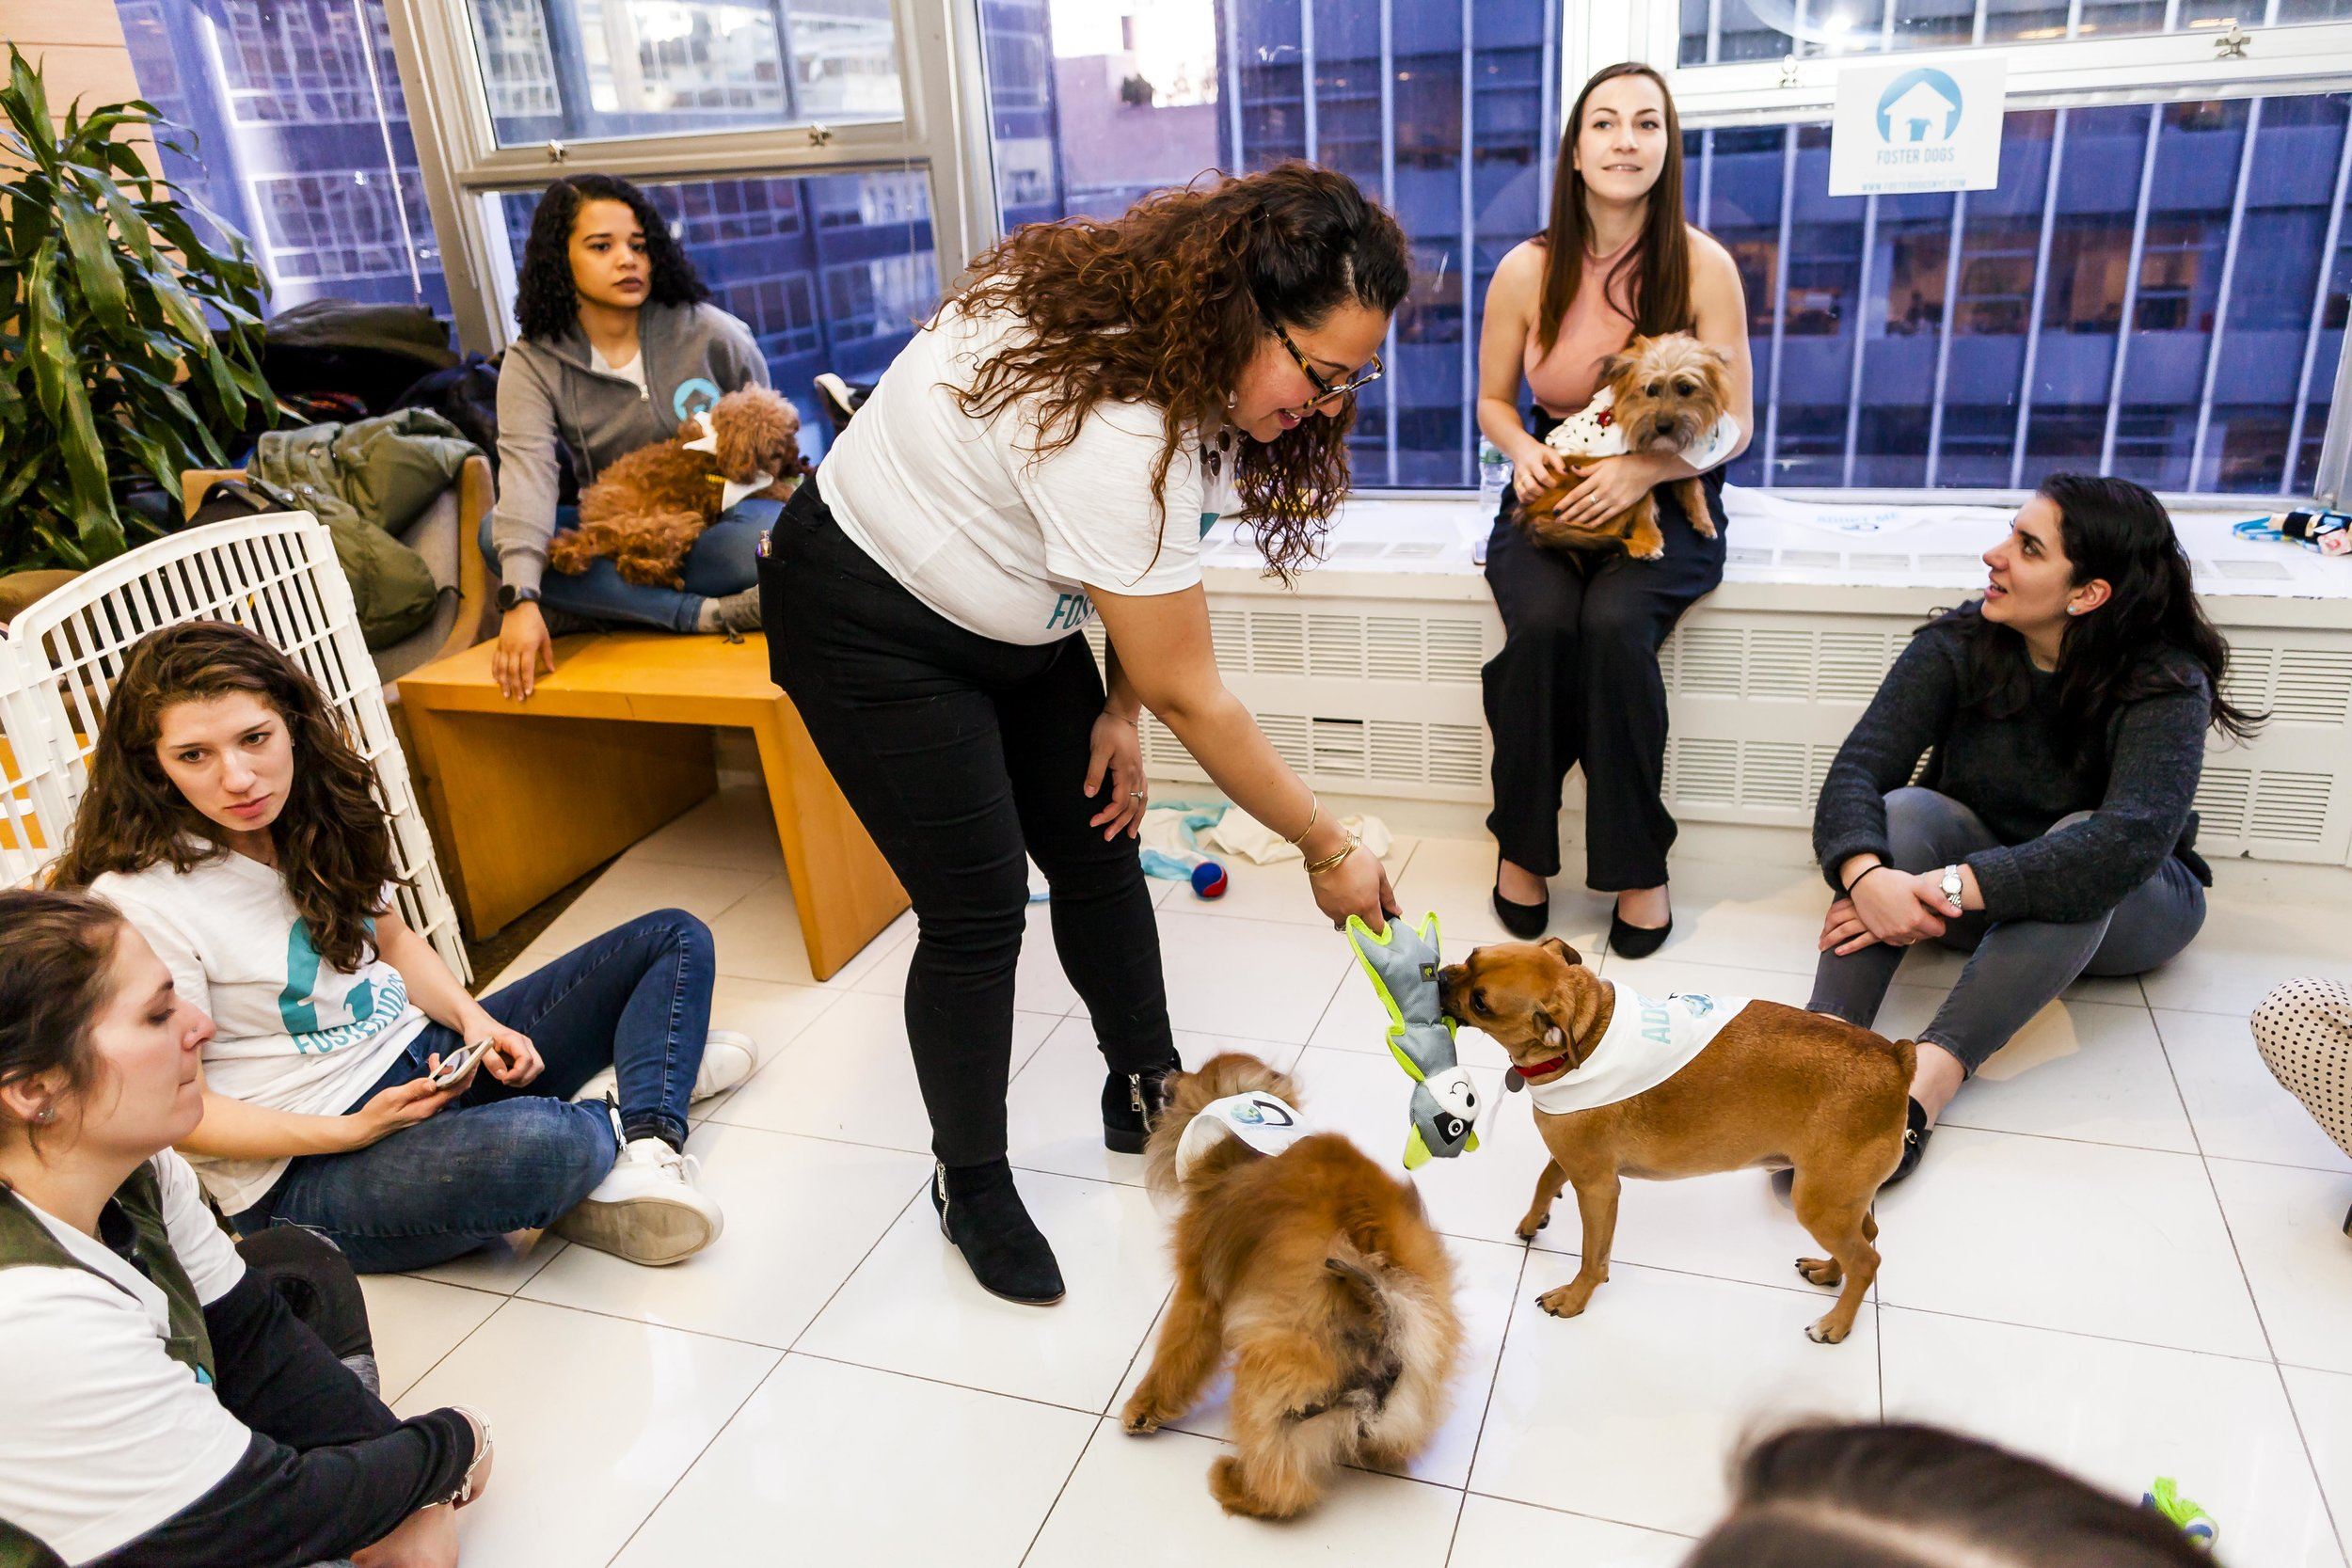 FosterDogs_DiscoveryPuppyParty_20180326_4969_©StaceyAxelrod.jpg